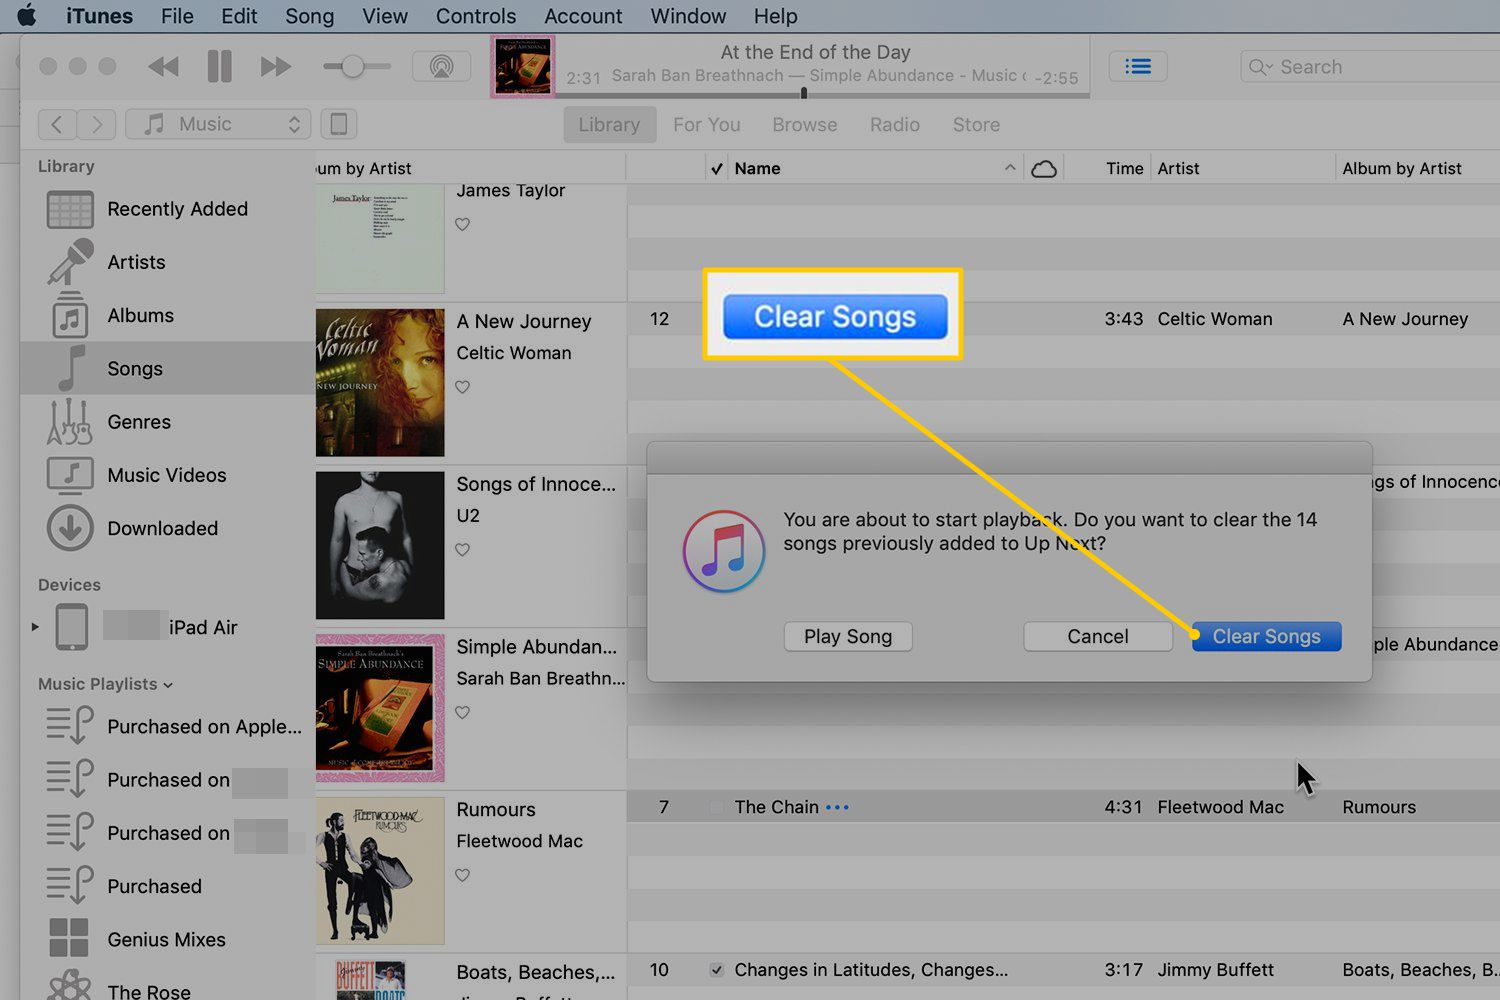 Clear Songs button in iTunes dialog